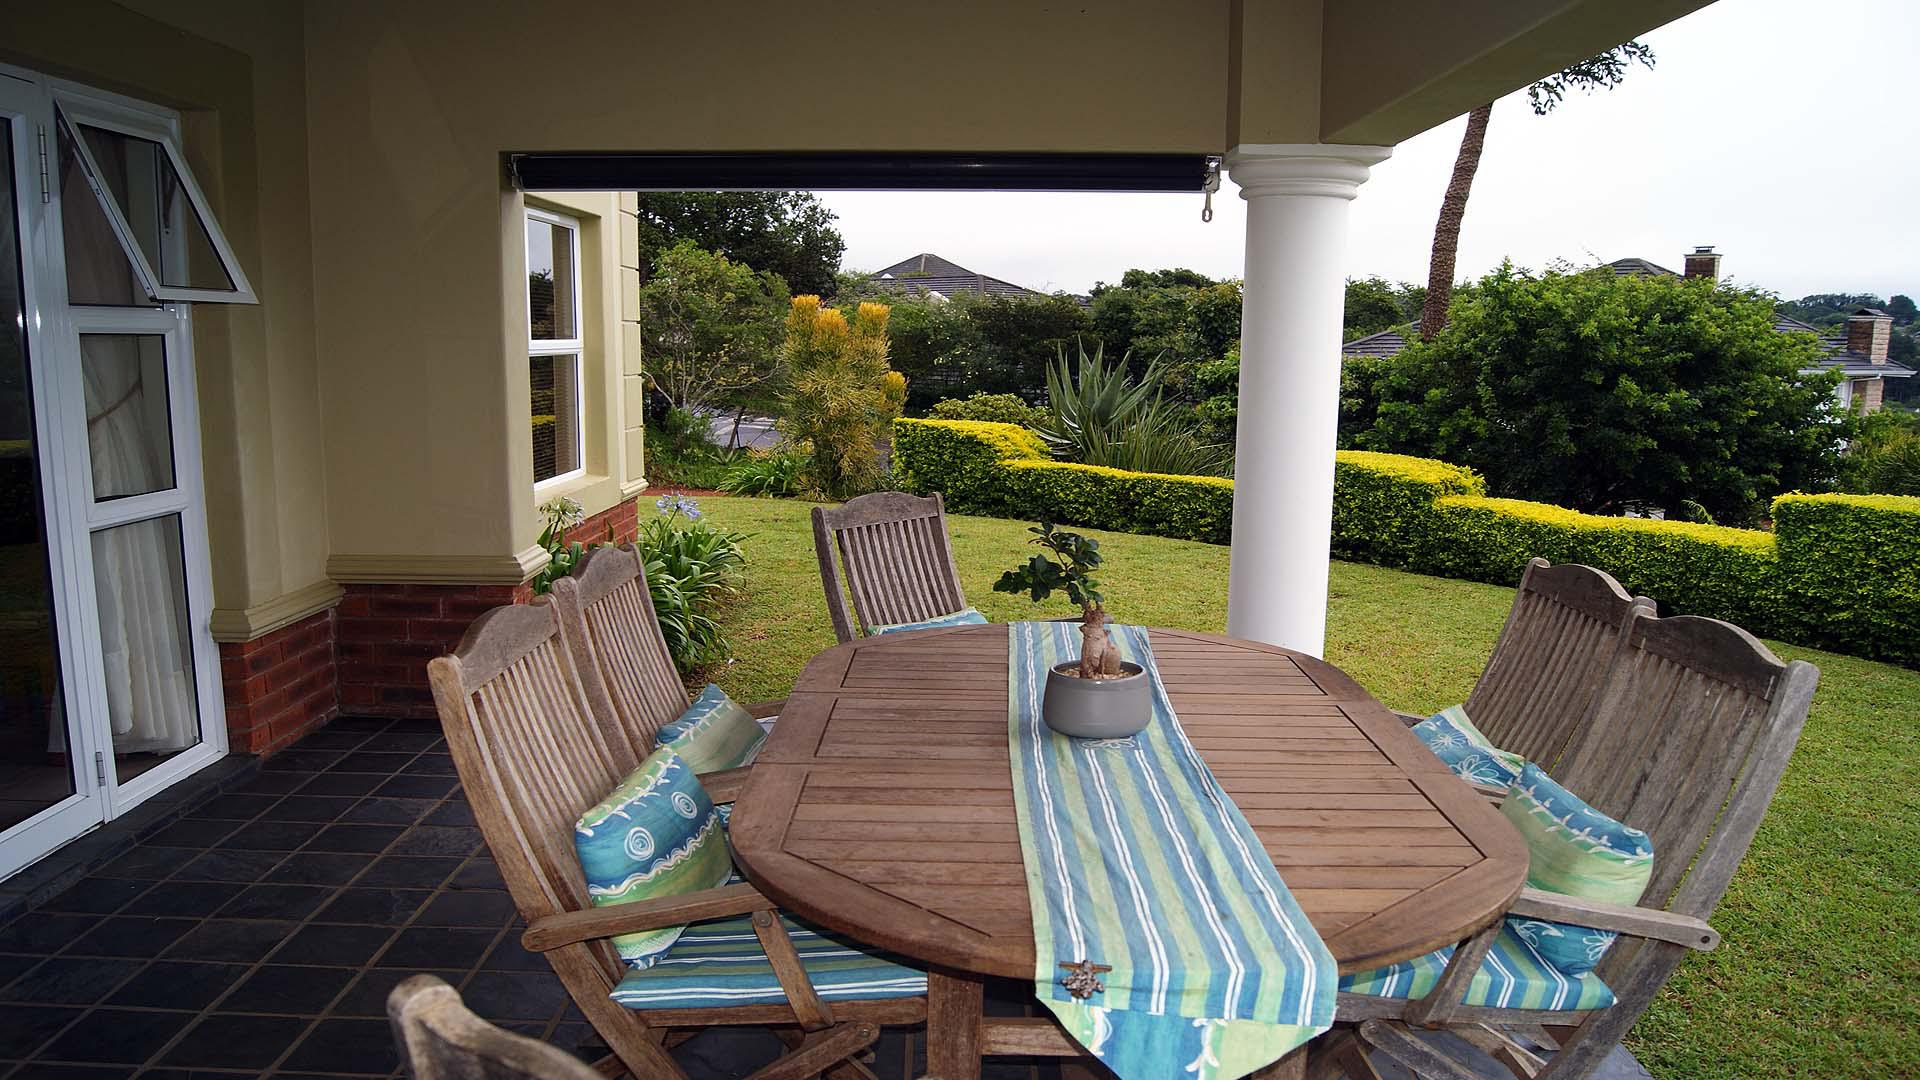 3 Bedroom House For Sale For Sale In Hillcrest Kzn